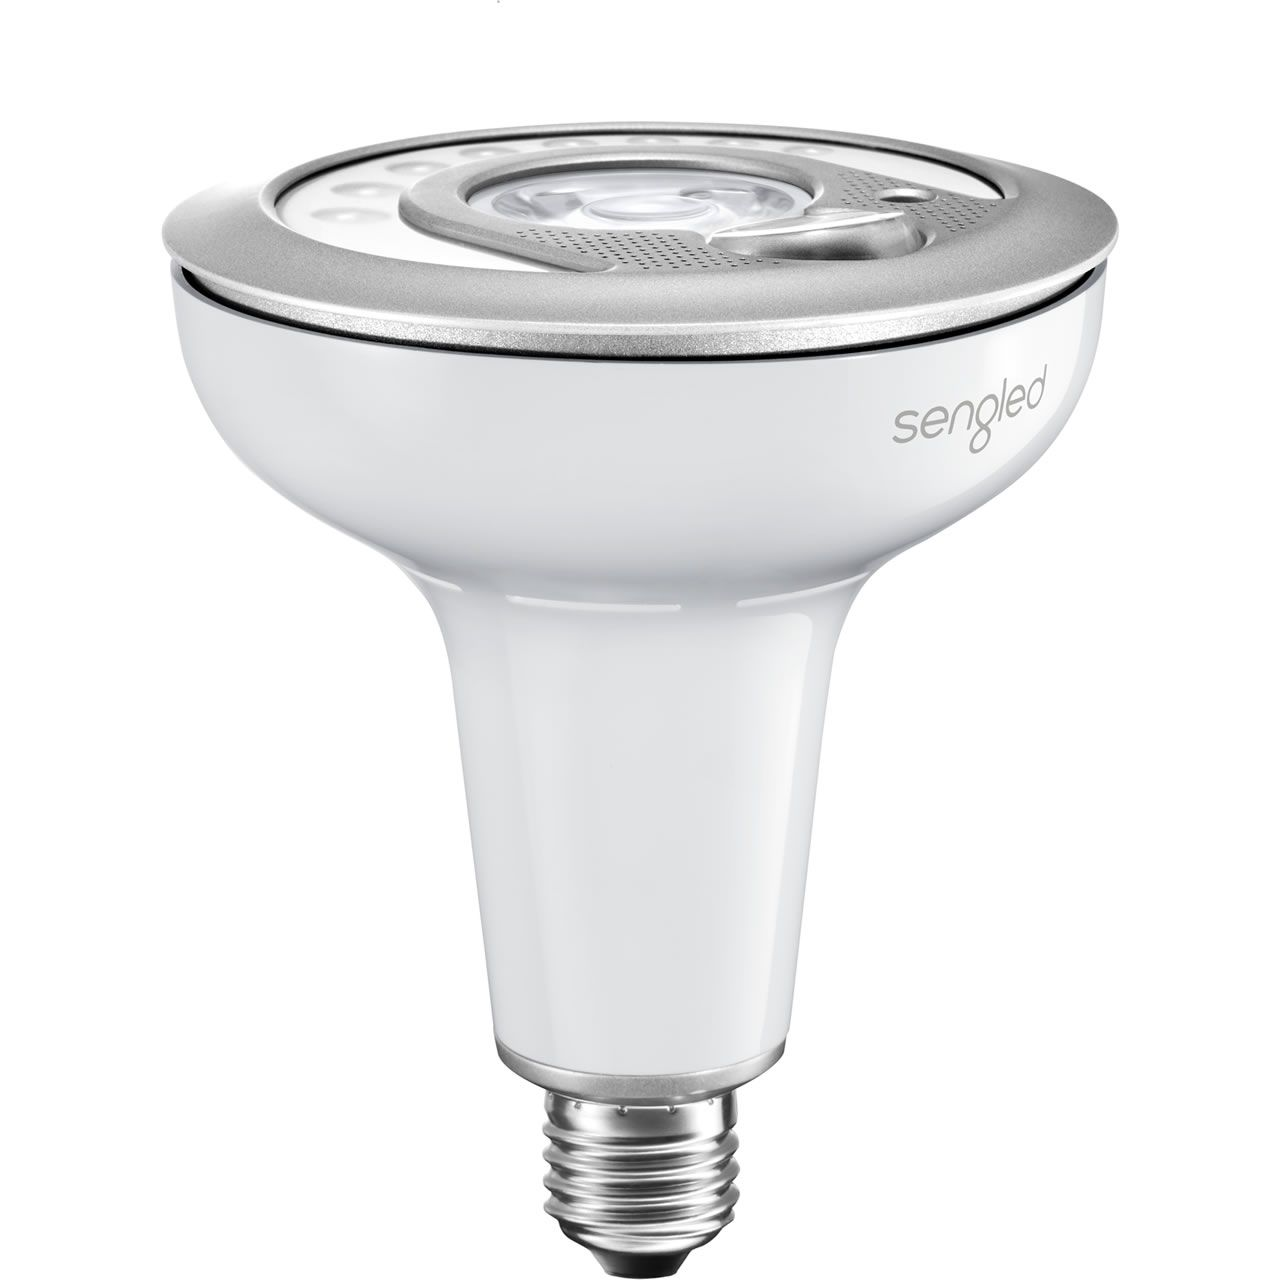 sengled snap light bulb with microphone camera speaker and wifi - Flood Light Bulbs